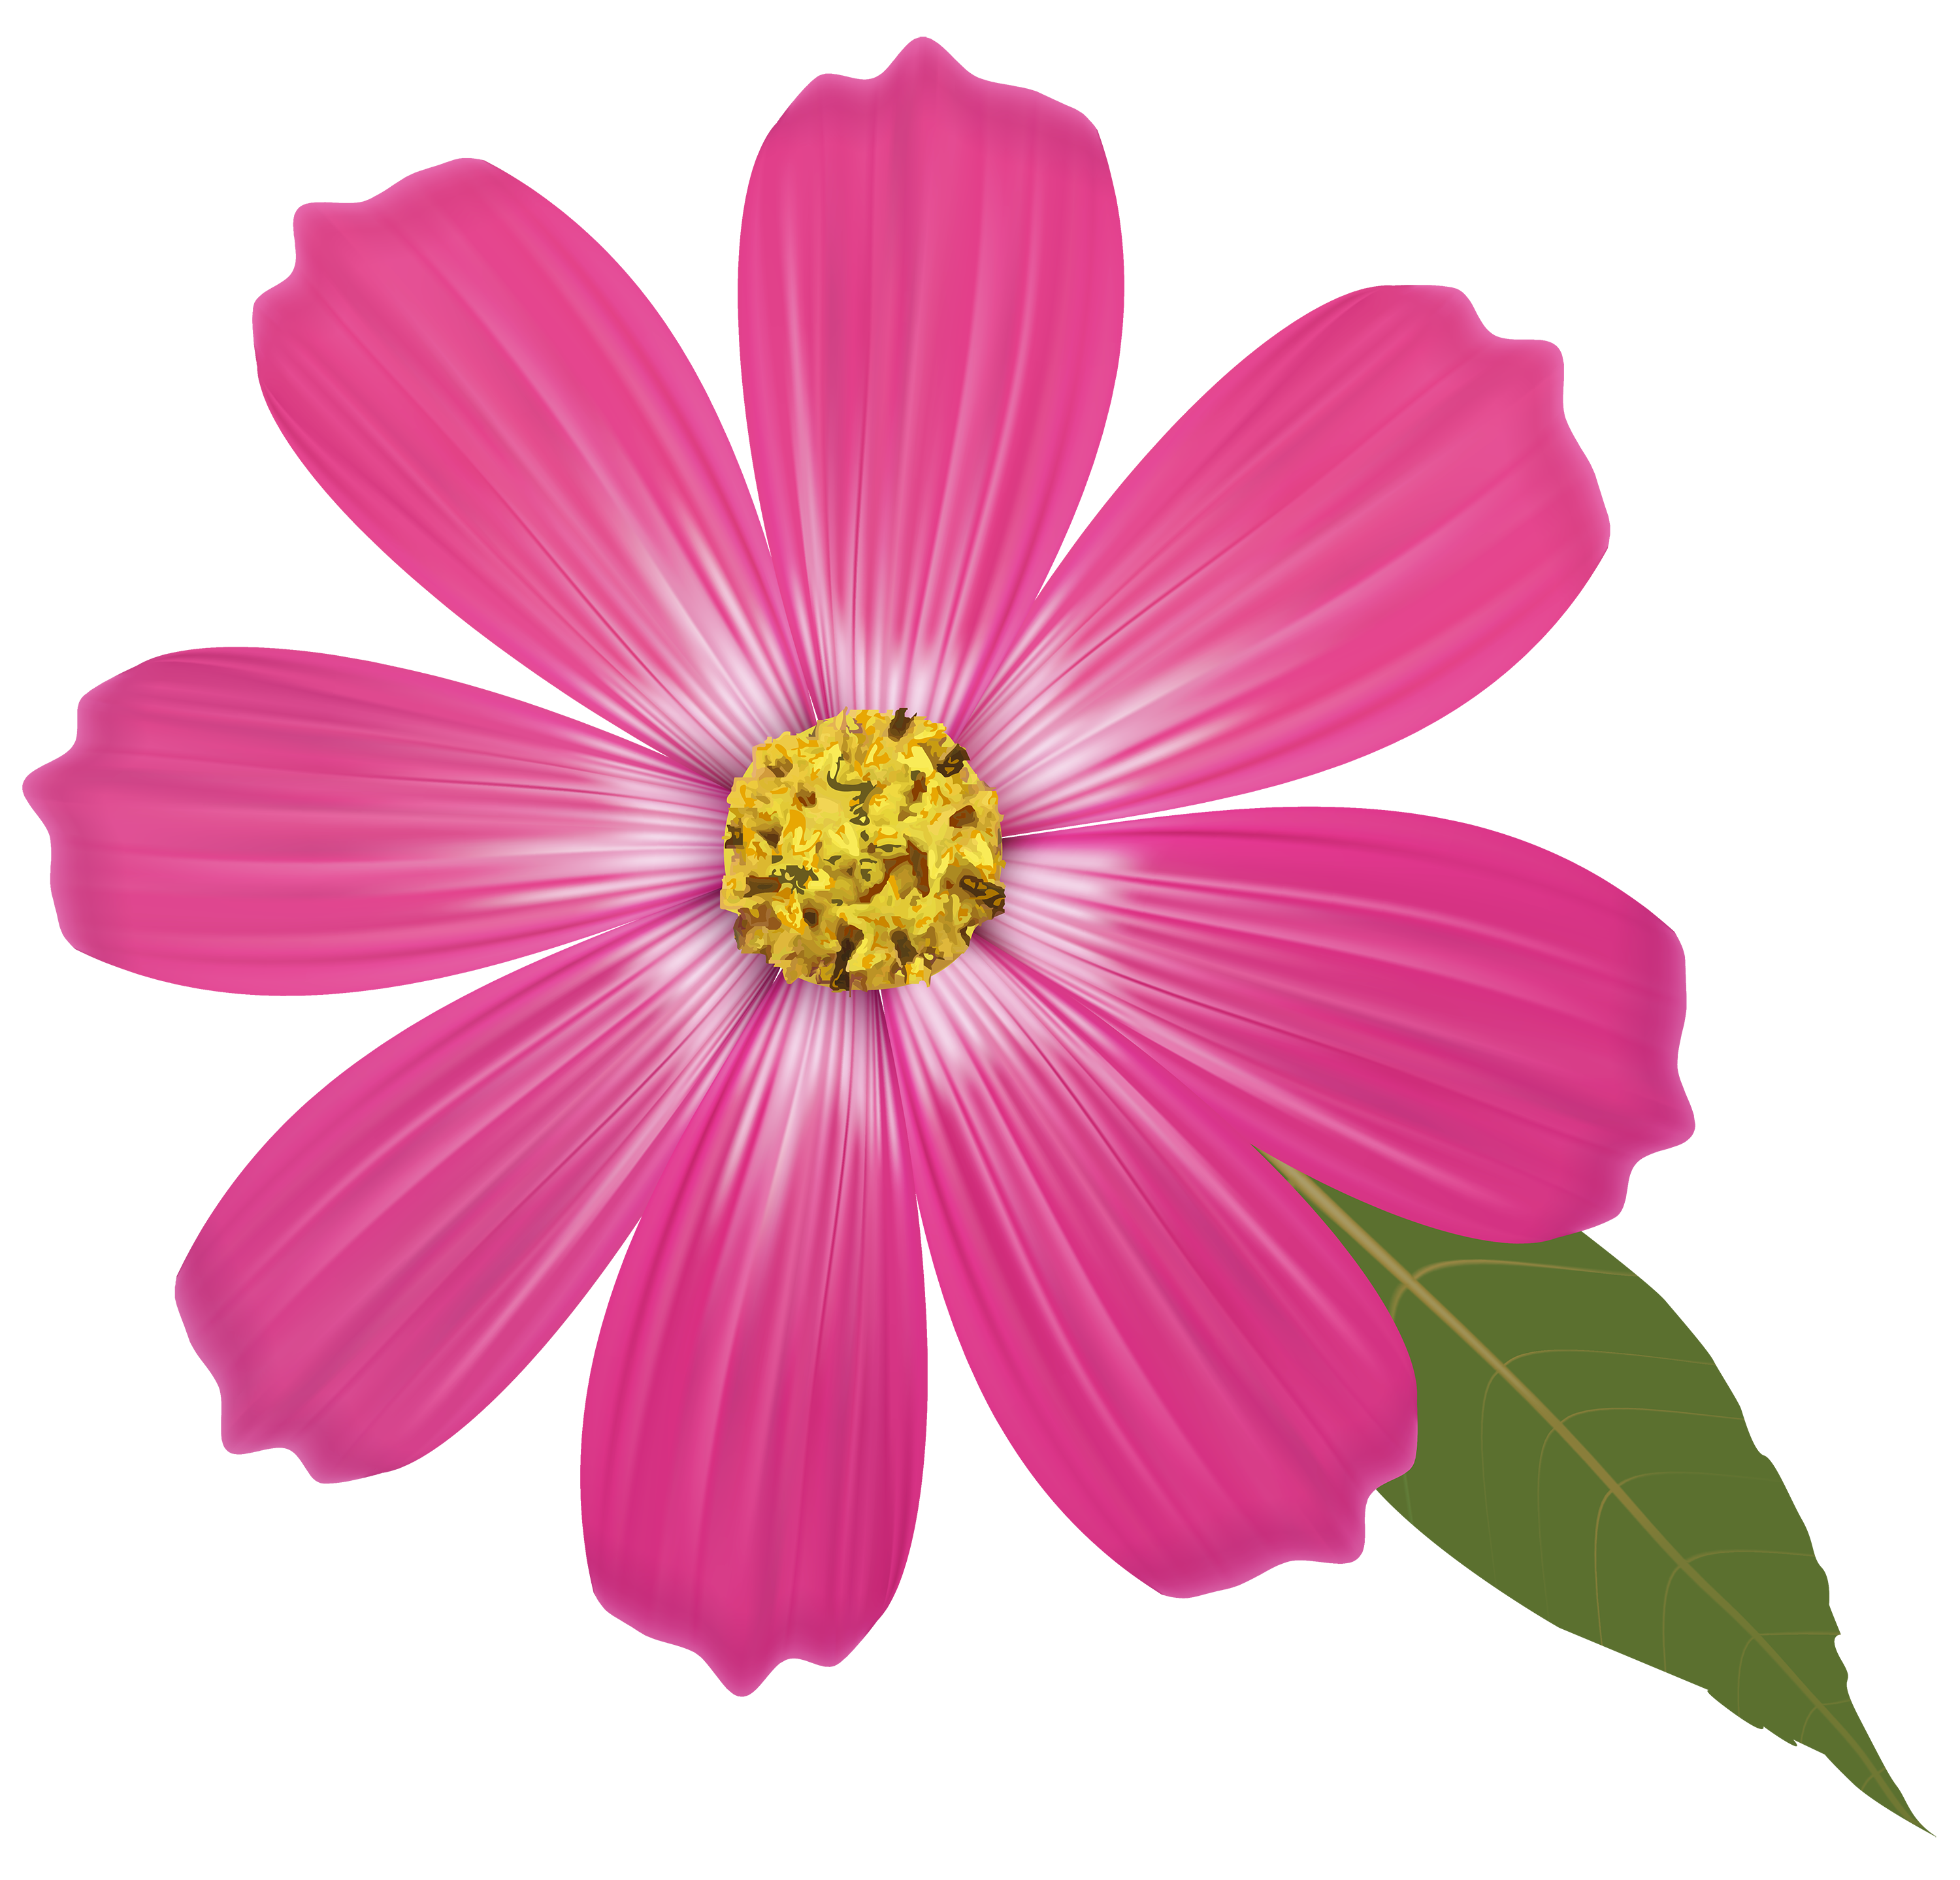 free clip art flowers transparent png clipart images free - HD3000×2878